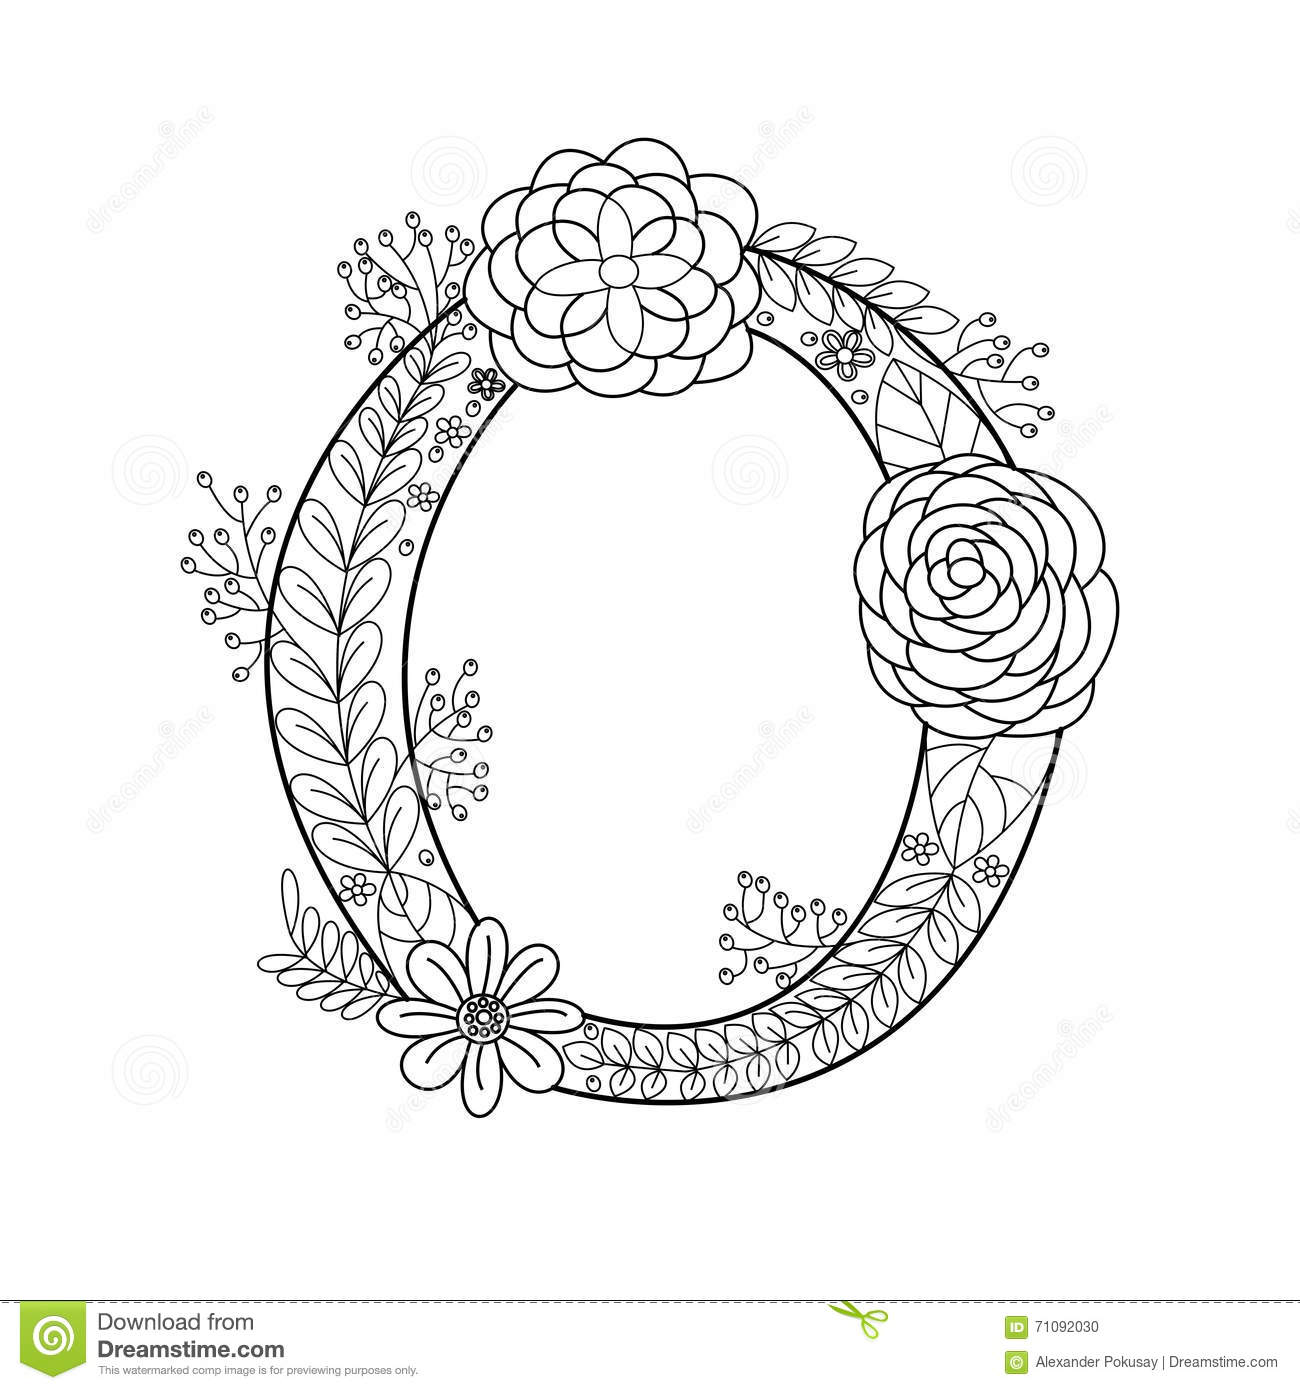 Coloring Pages For Boys furthermore Coloring Pages Flowers also Watermelon Coloring Pages also Letter S Handwriting Worksheets as well Hand Drill Coloring Pages. on coloring pages for alphabet